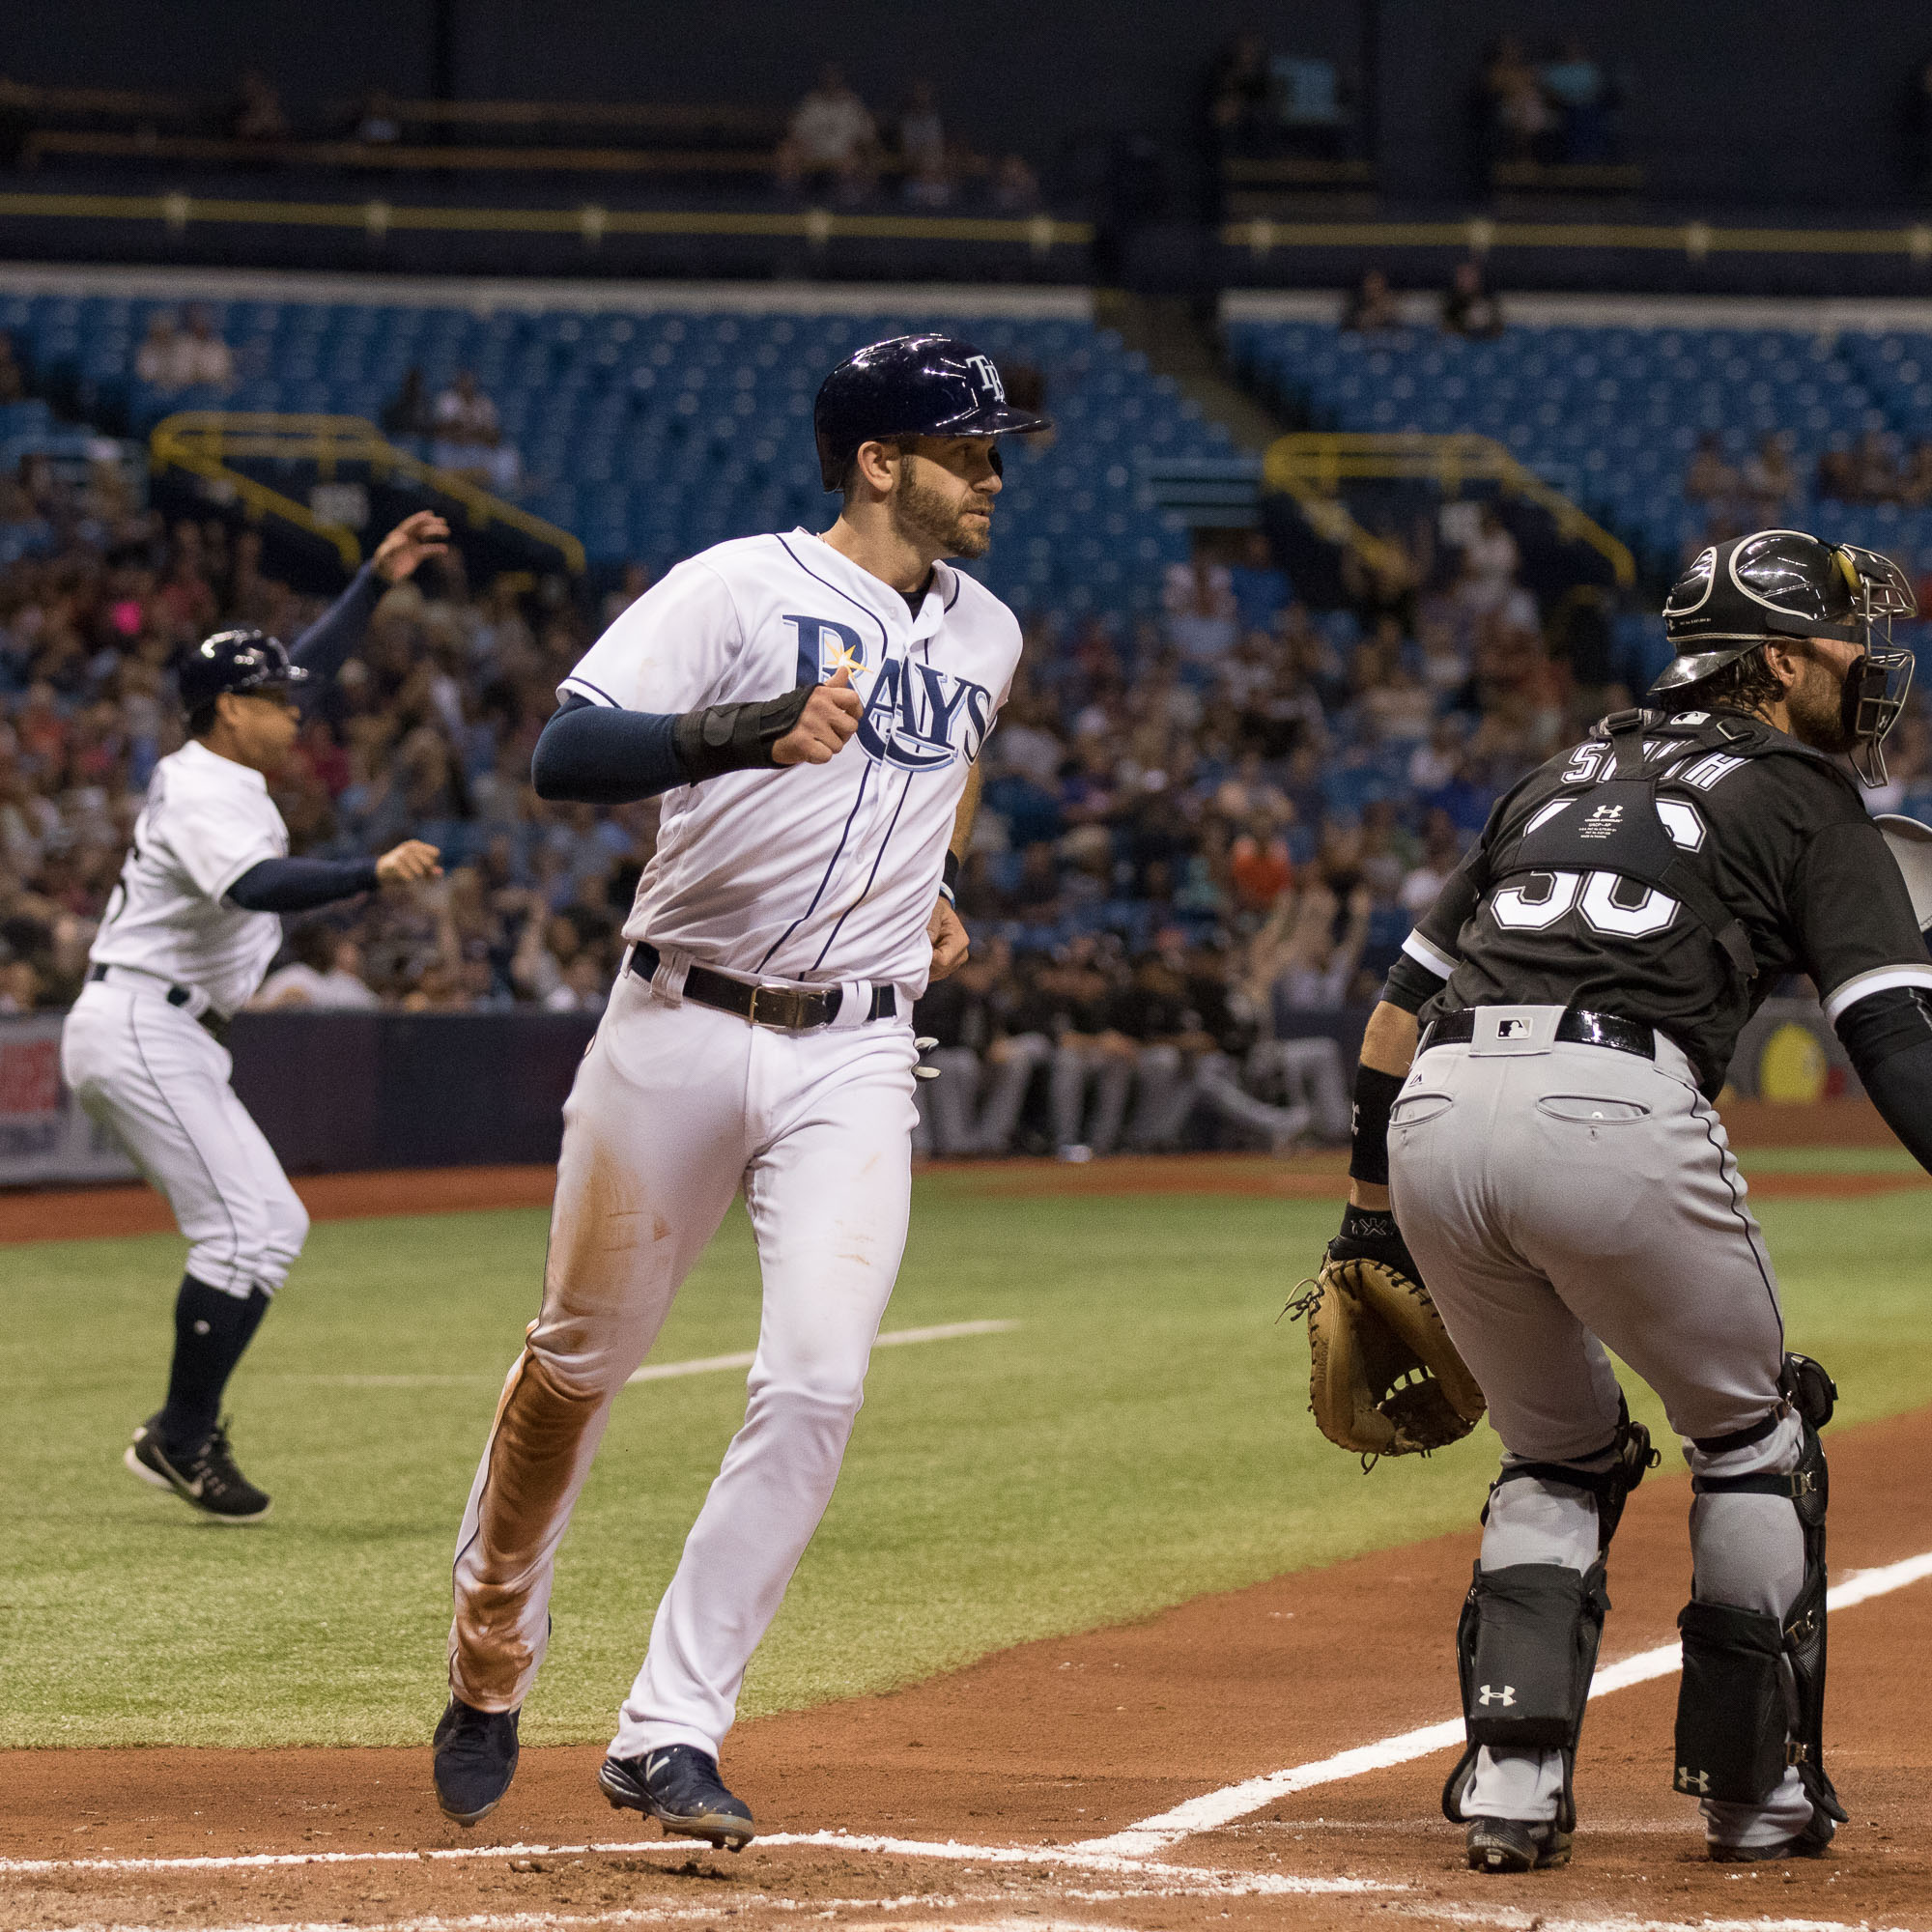 Evan Longoria scores a run in the Rays' 3-1 victory./STEVEN MUNCIE